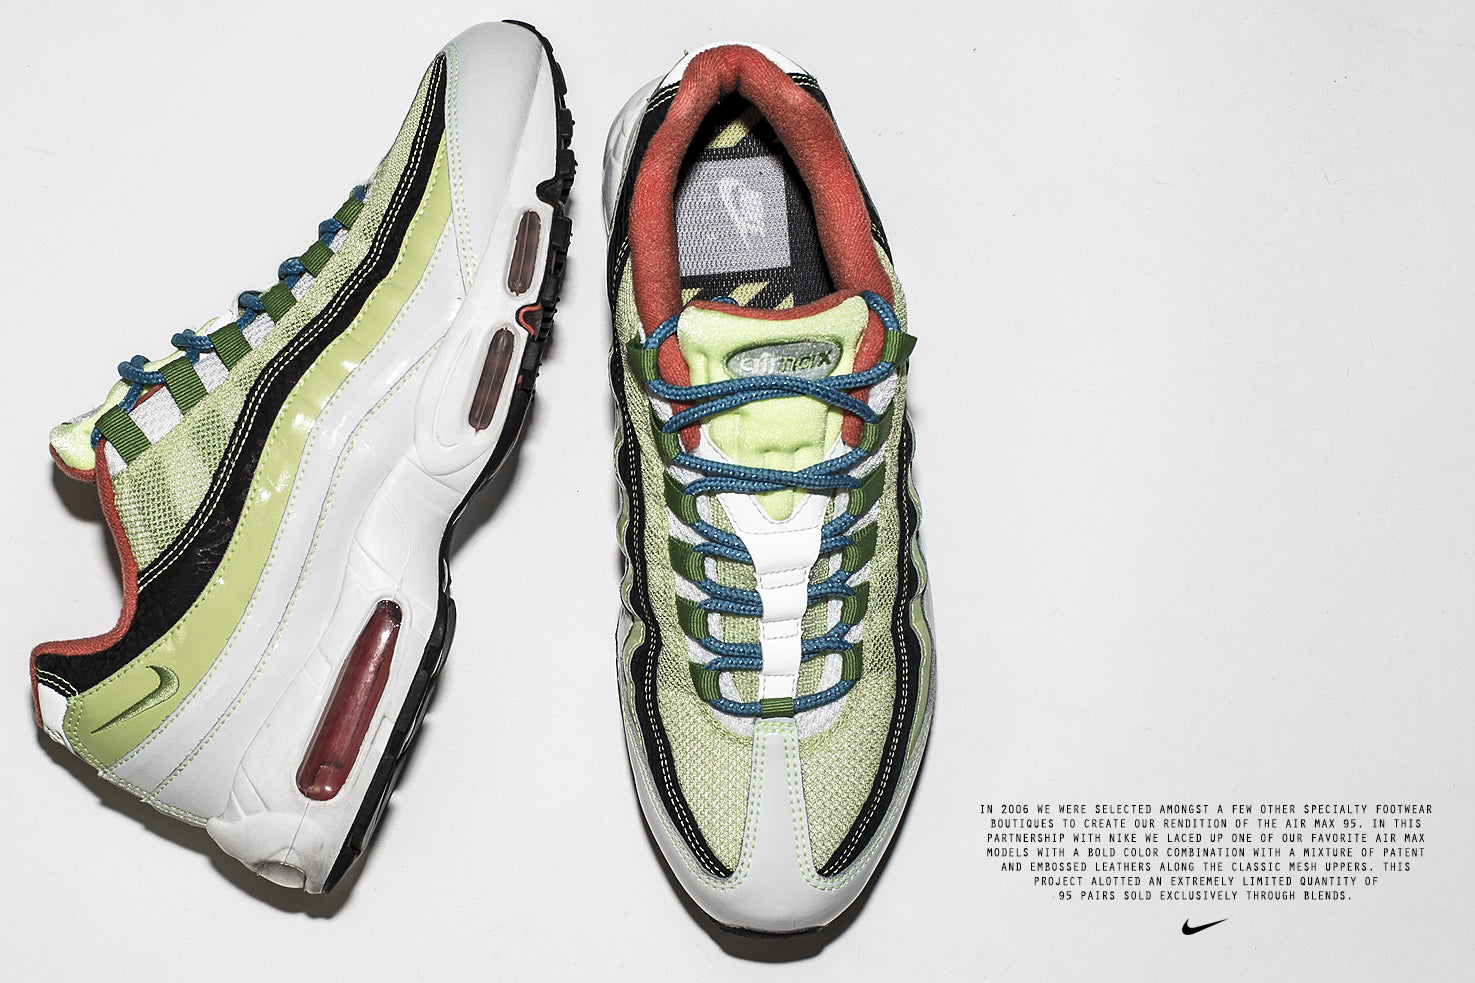 Nike x Blends Air Max 95